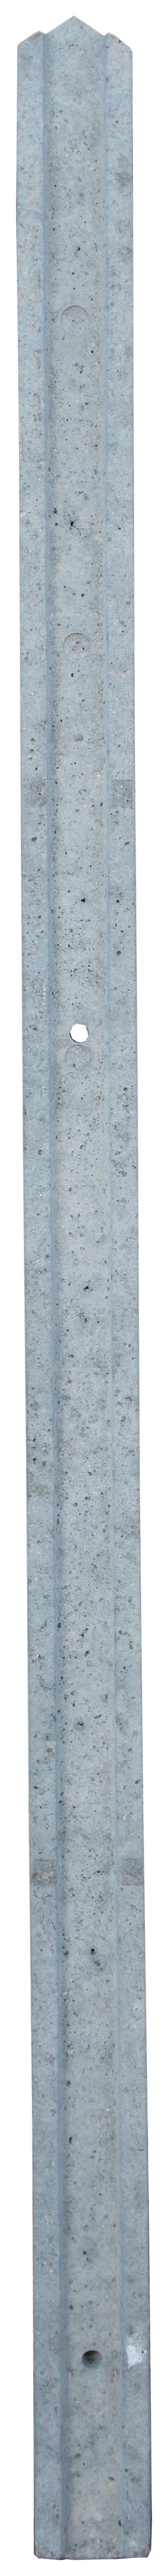 Image of Forest Slotted Intermediate Concrete Fence Posts.